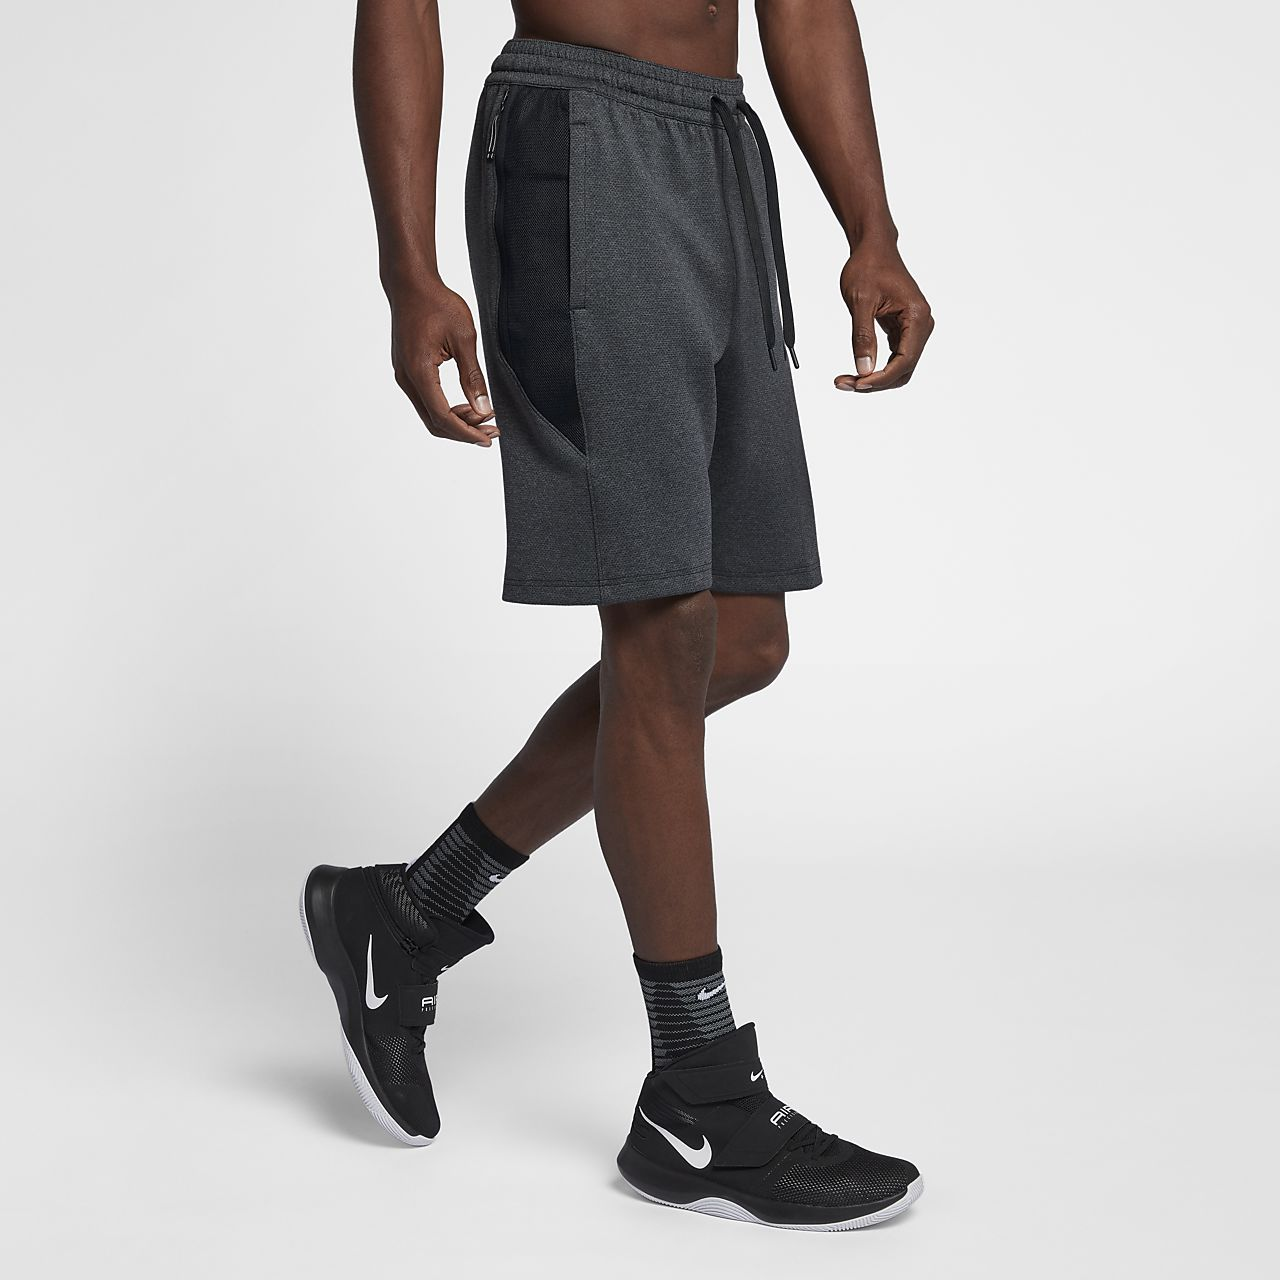 Pebish hjälp Medicinsk  Nike Therma Flex Showtime Men's Basketball Shorts. Nike.com SA